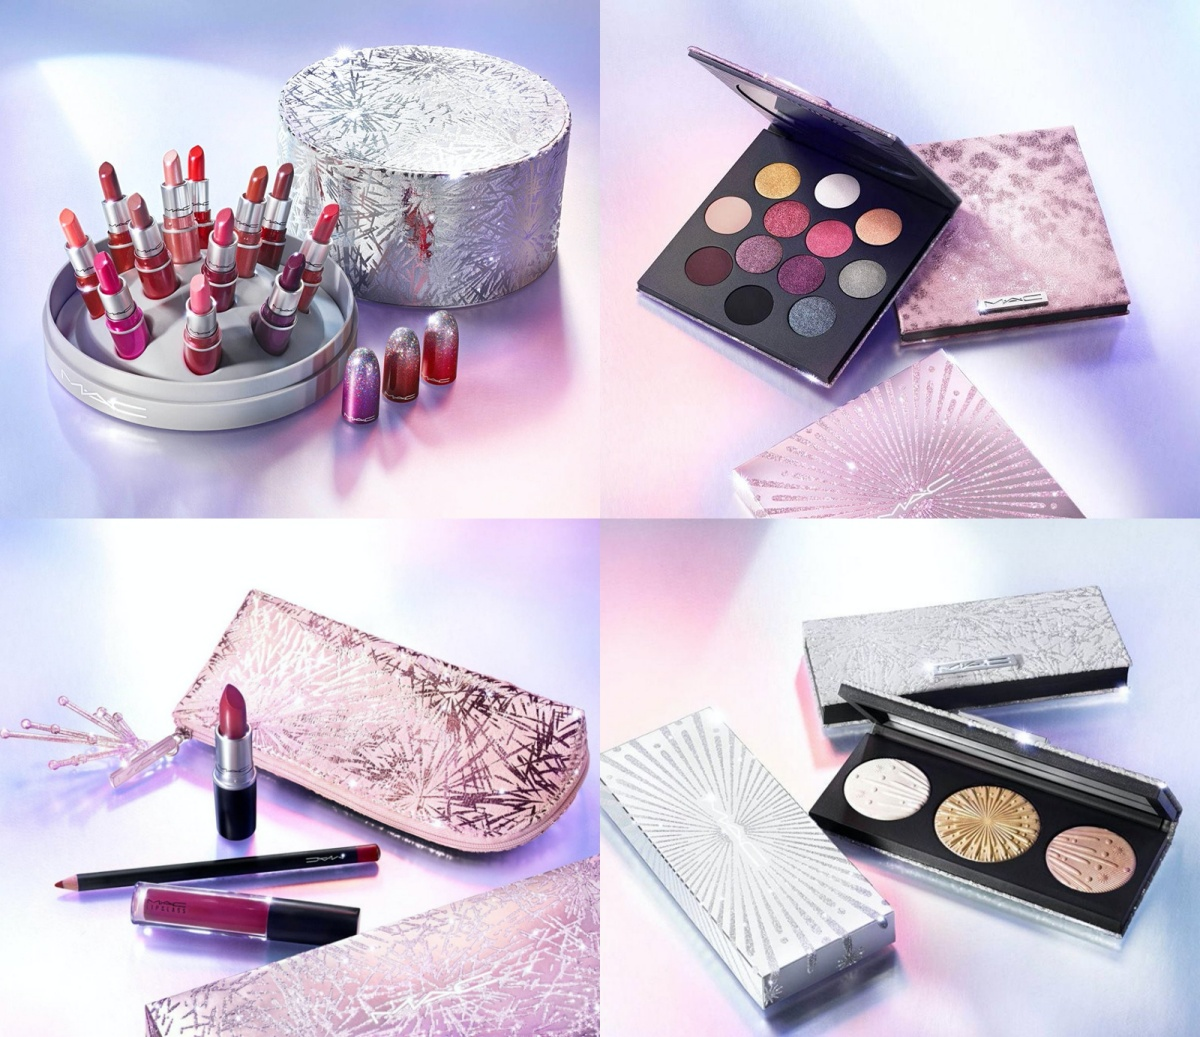 Mac Christmas Collection 2020 MAC Cosmetics Advent Calendar 2020 | Contents & Release Date